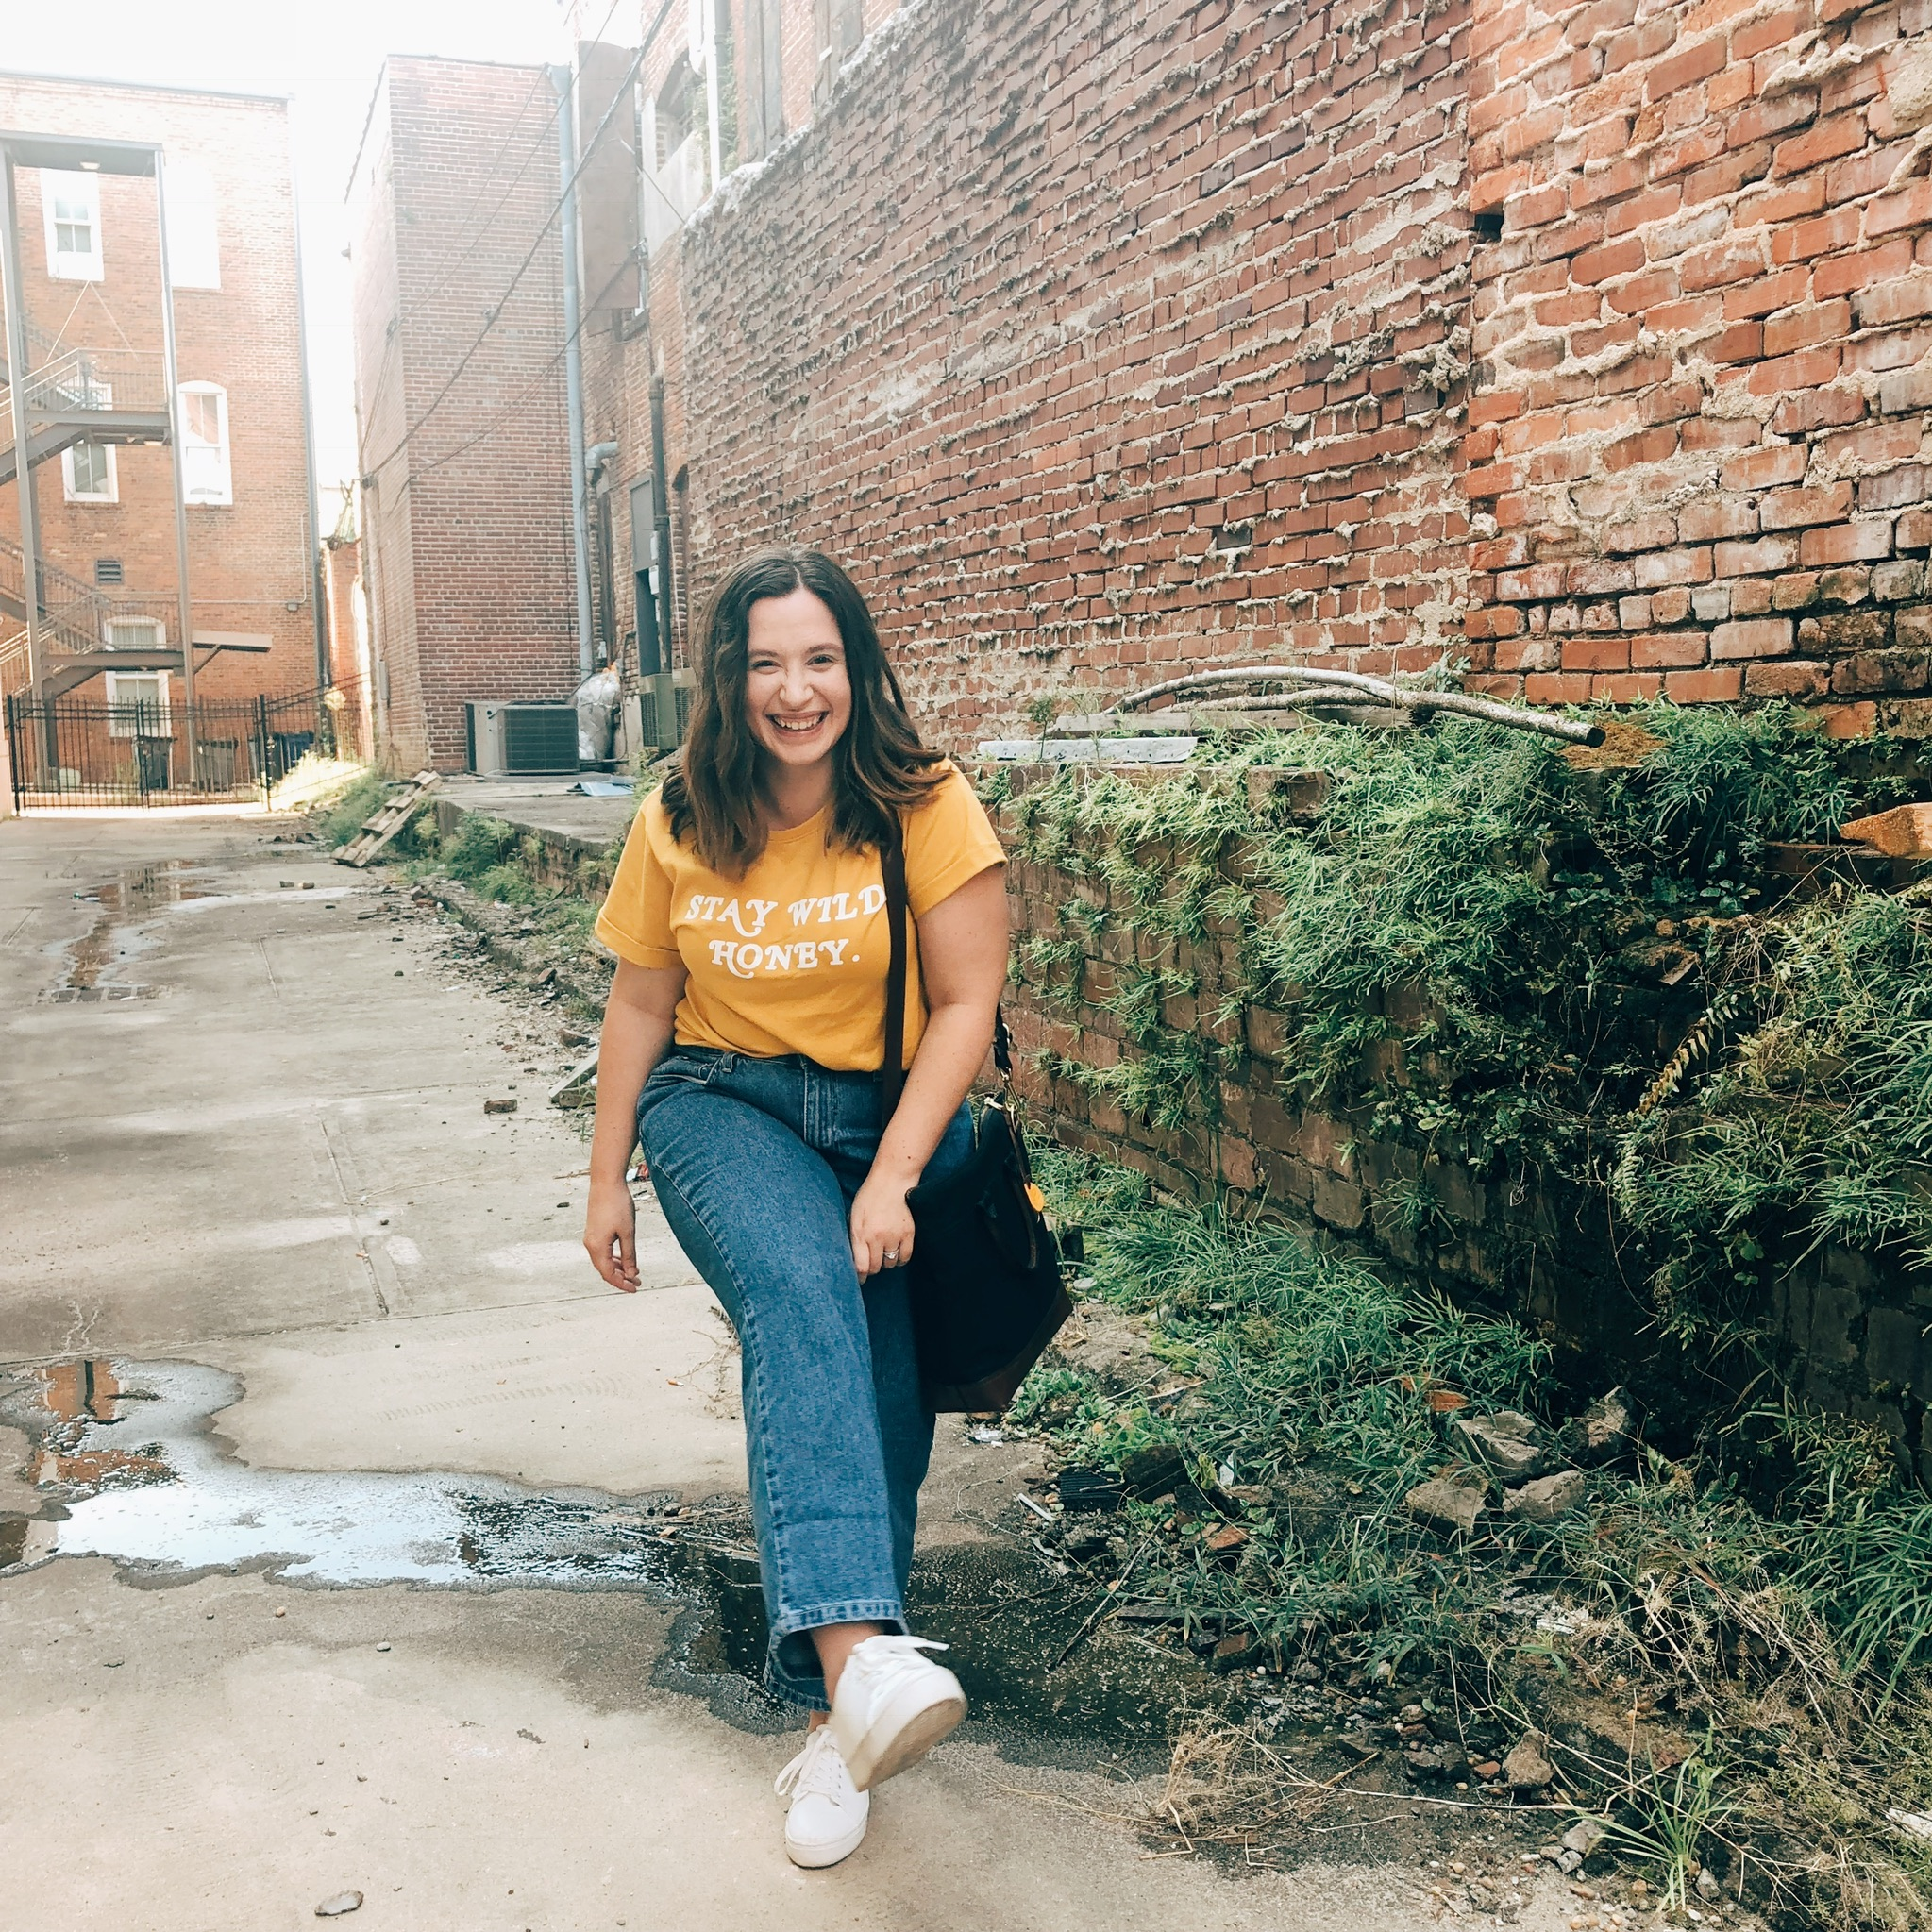 vintage fashion, thrifted fashion, thrifted outfit, blogger outfits, wide leg cropped jeans outfit, vintage jeans outfit, graphic t-shirt outfits